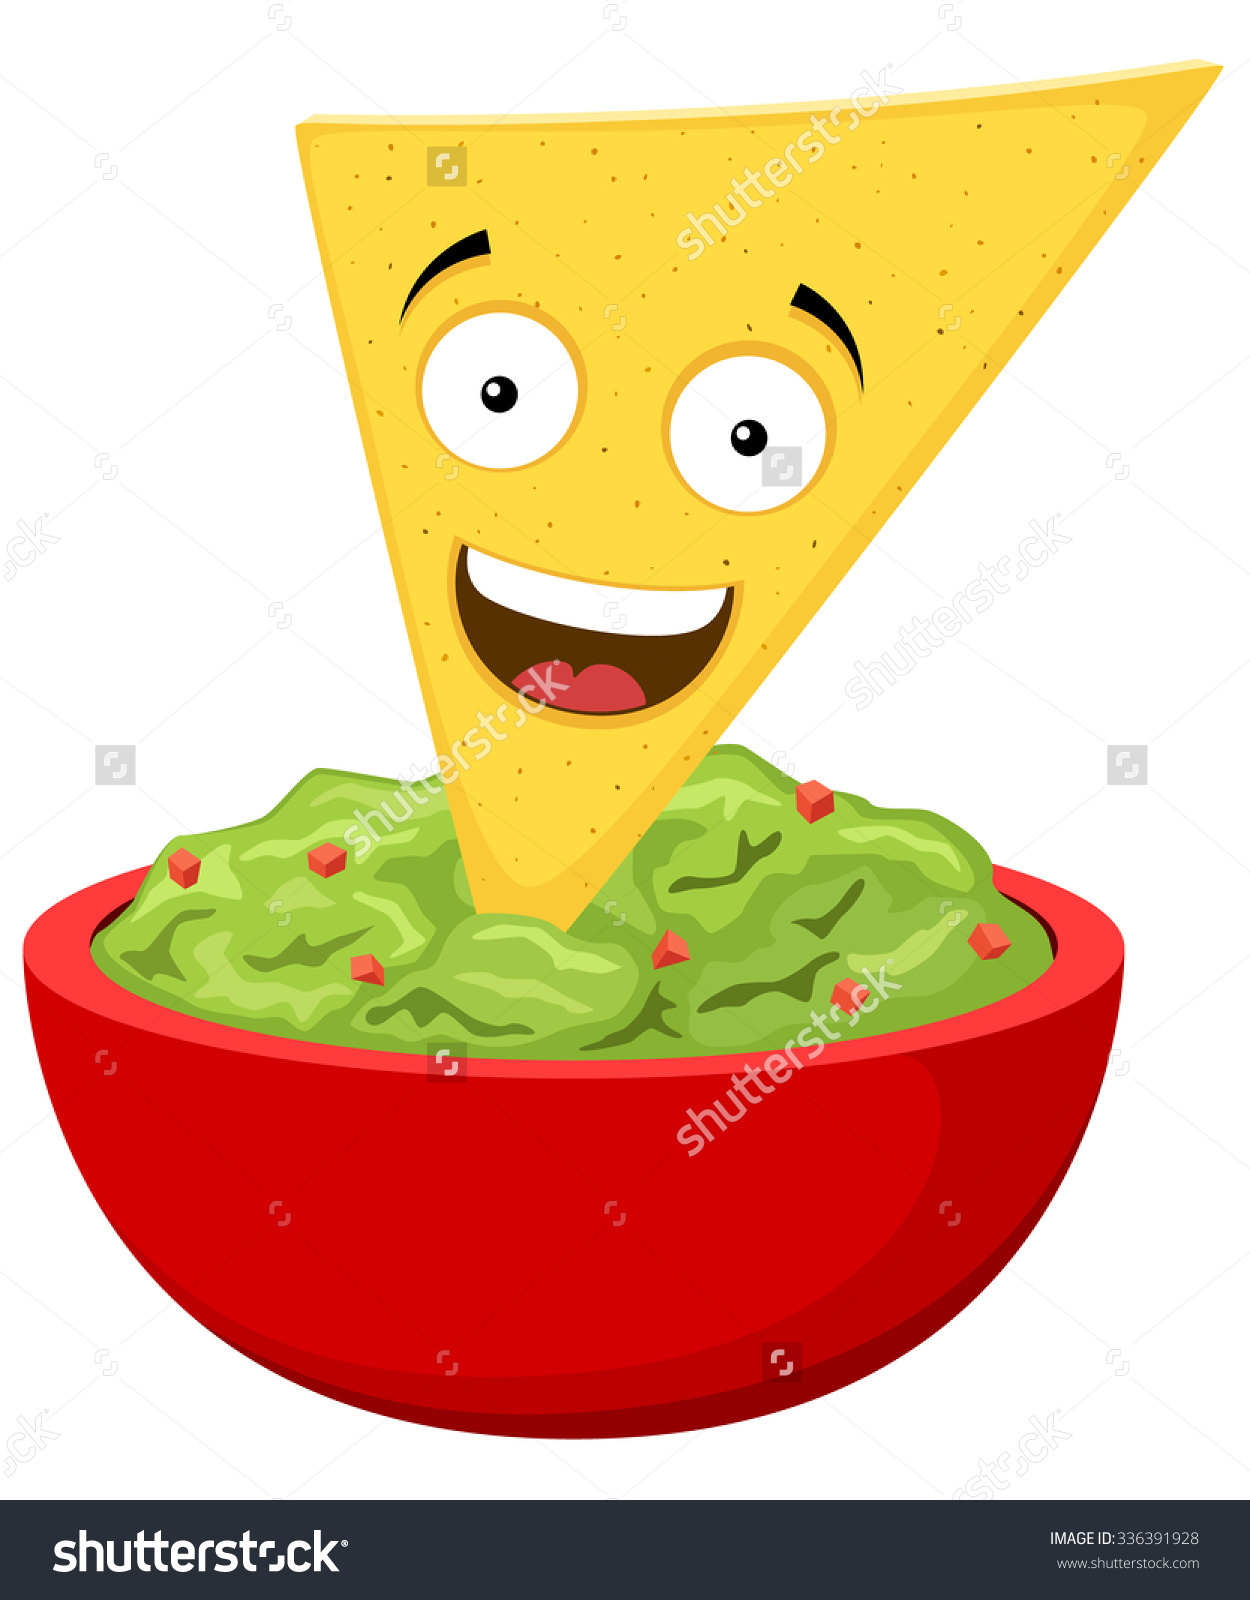 Bowls clipart cute face with guacamole.